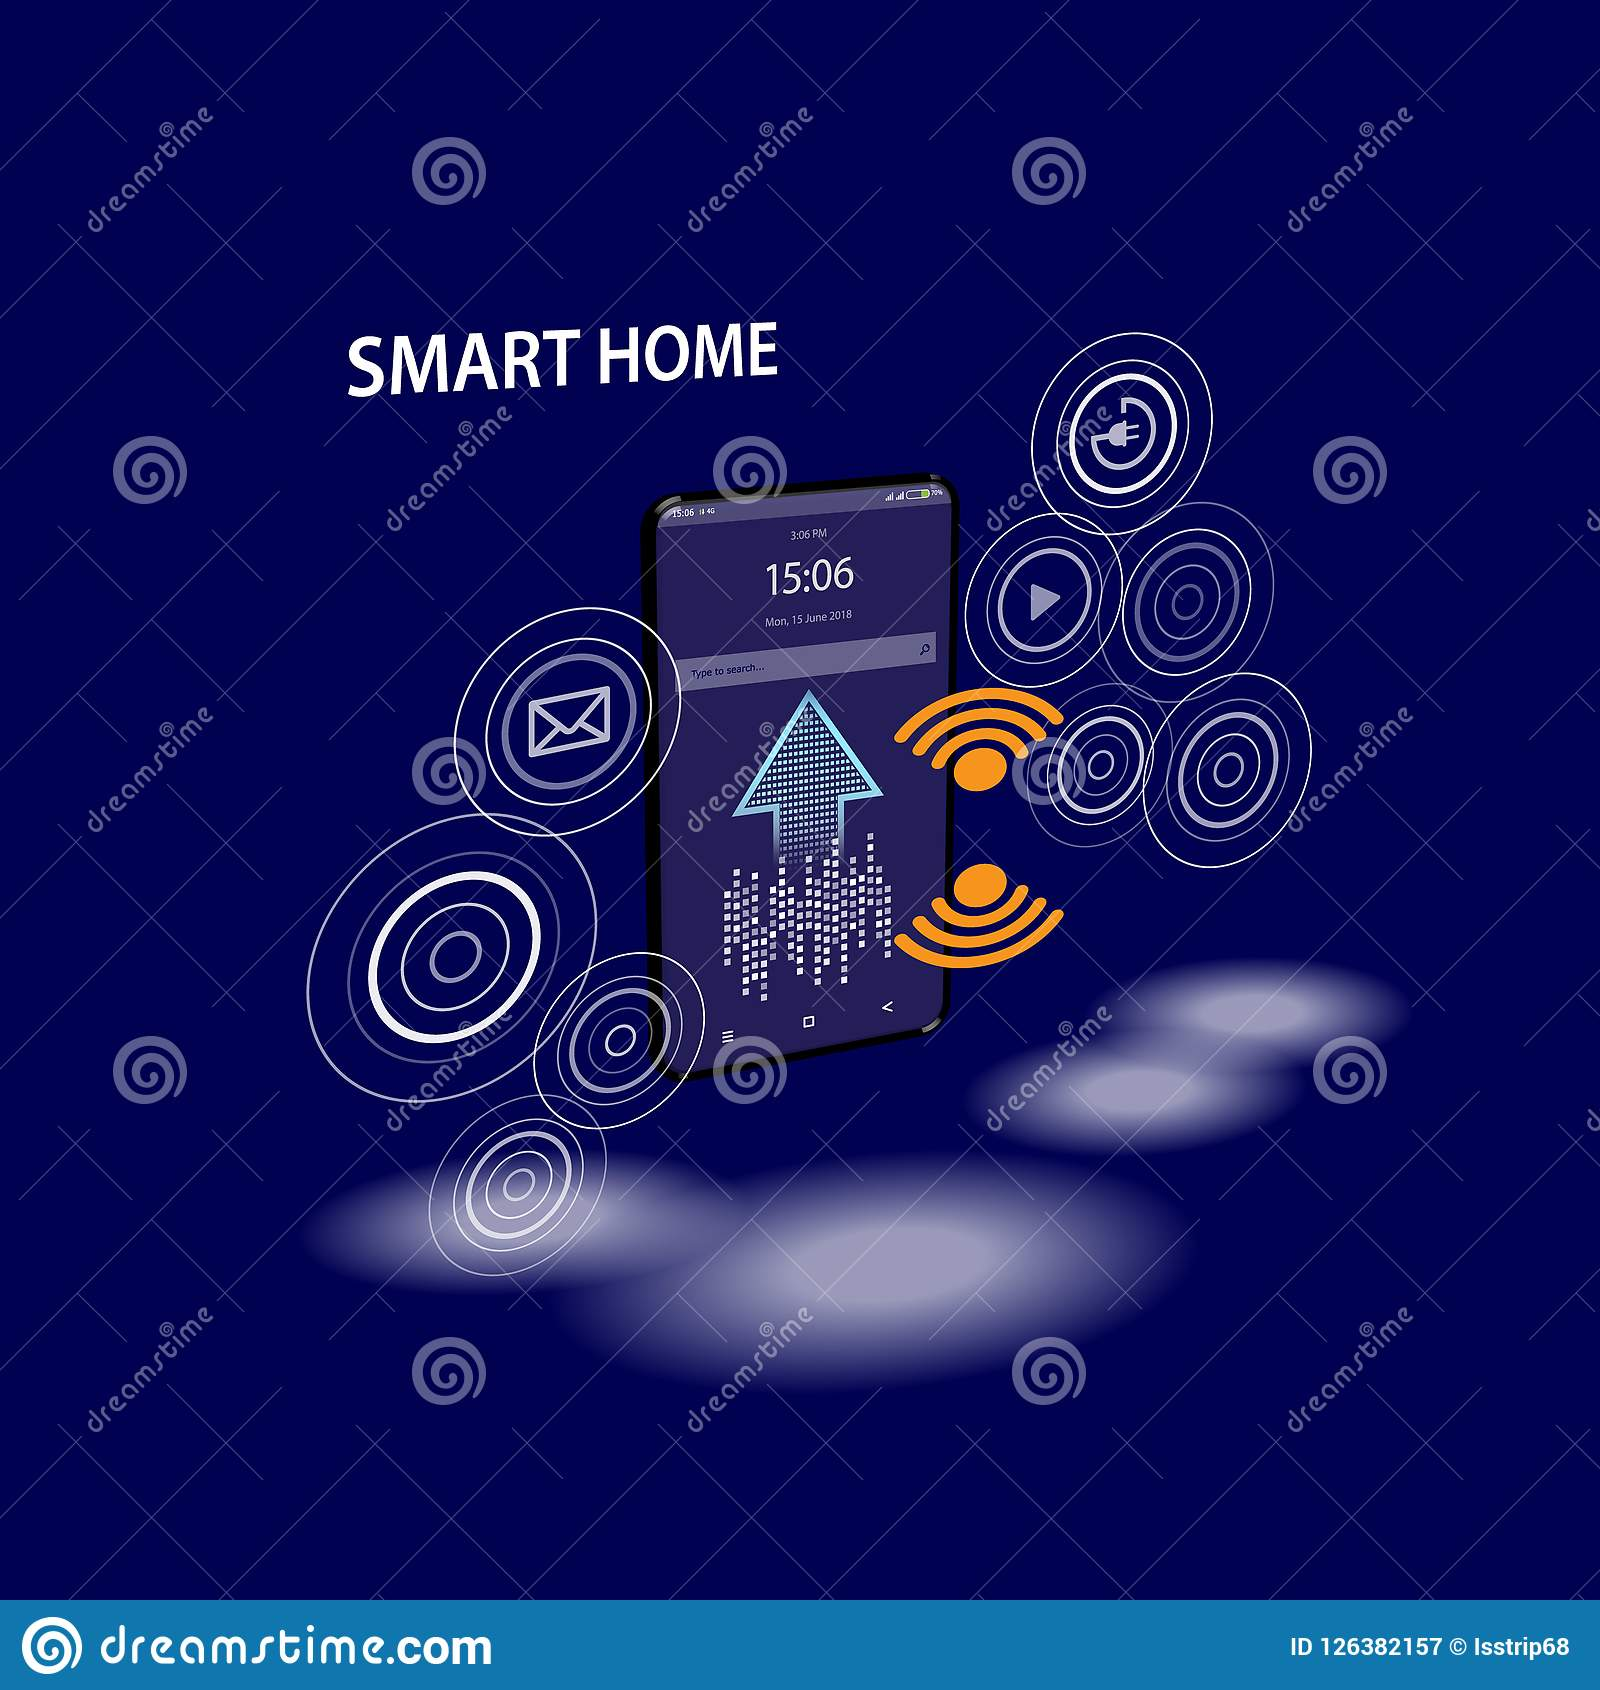 Smartphone with digital logo smart home stand at iot icons. Smart phone controls devices of smart home via wireless